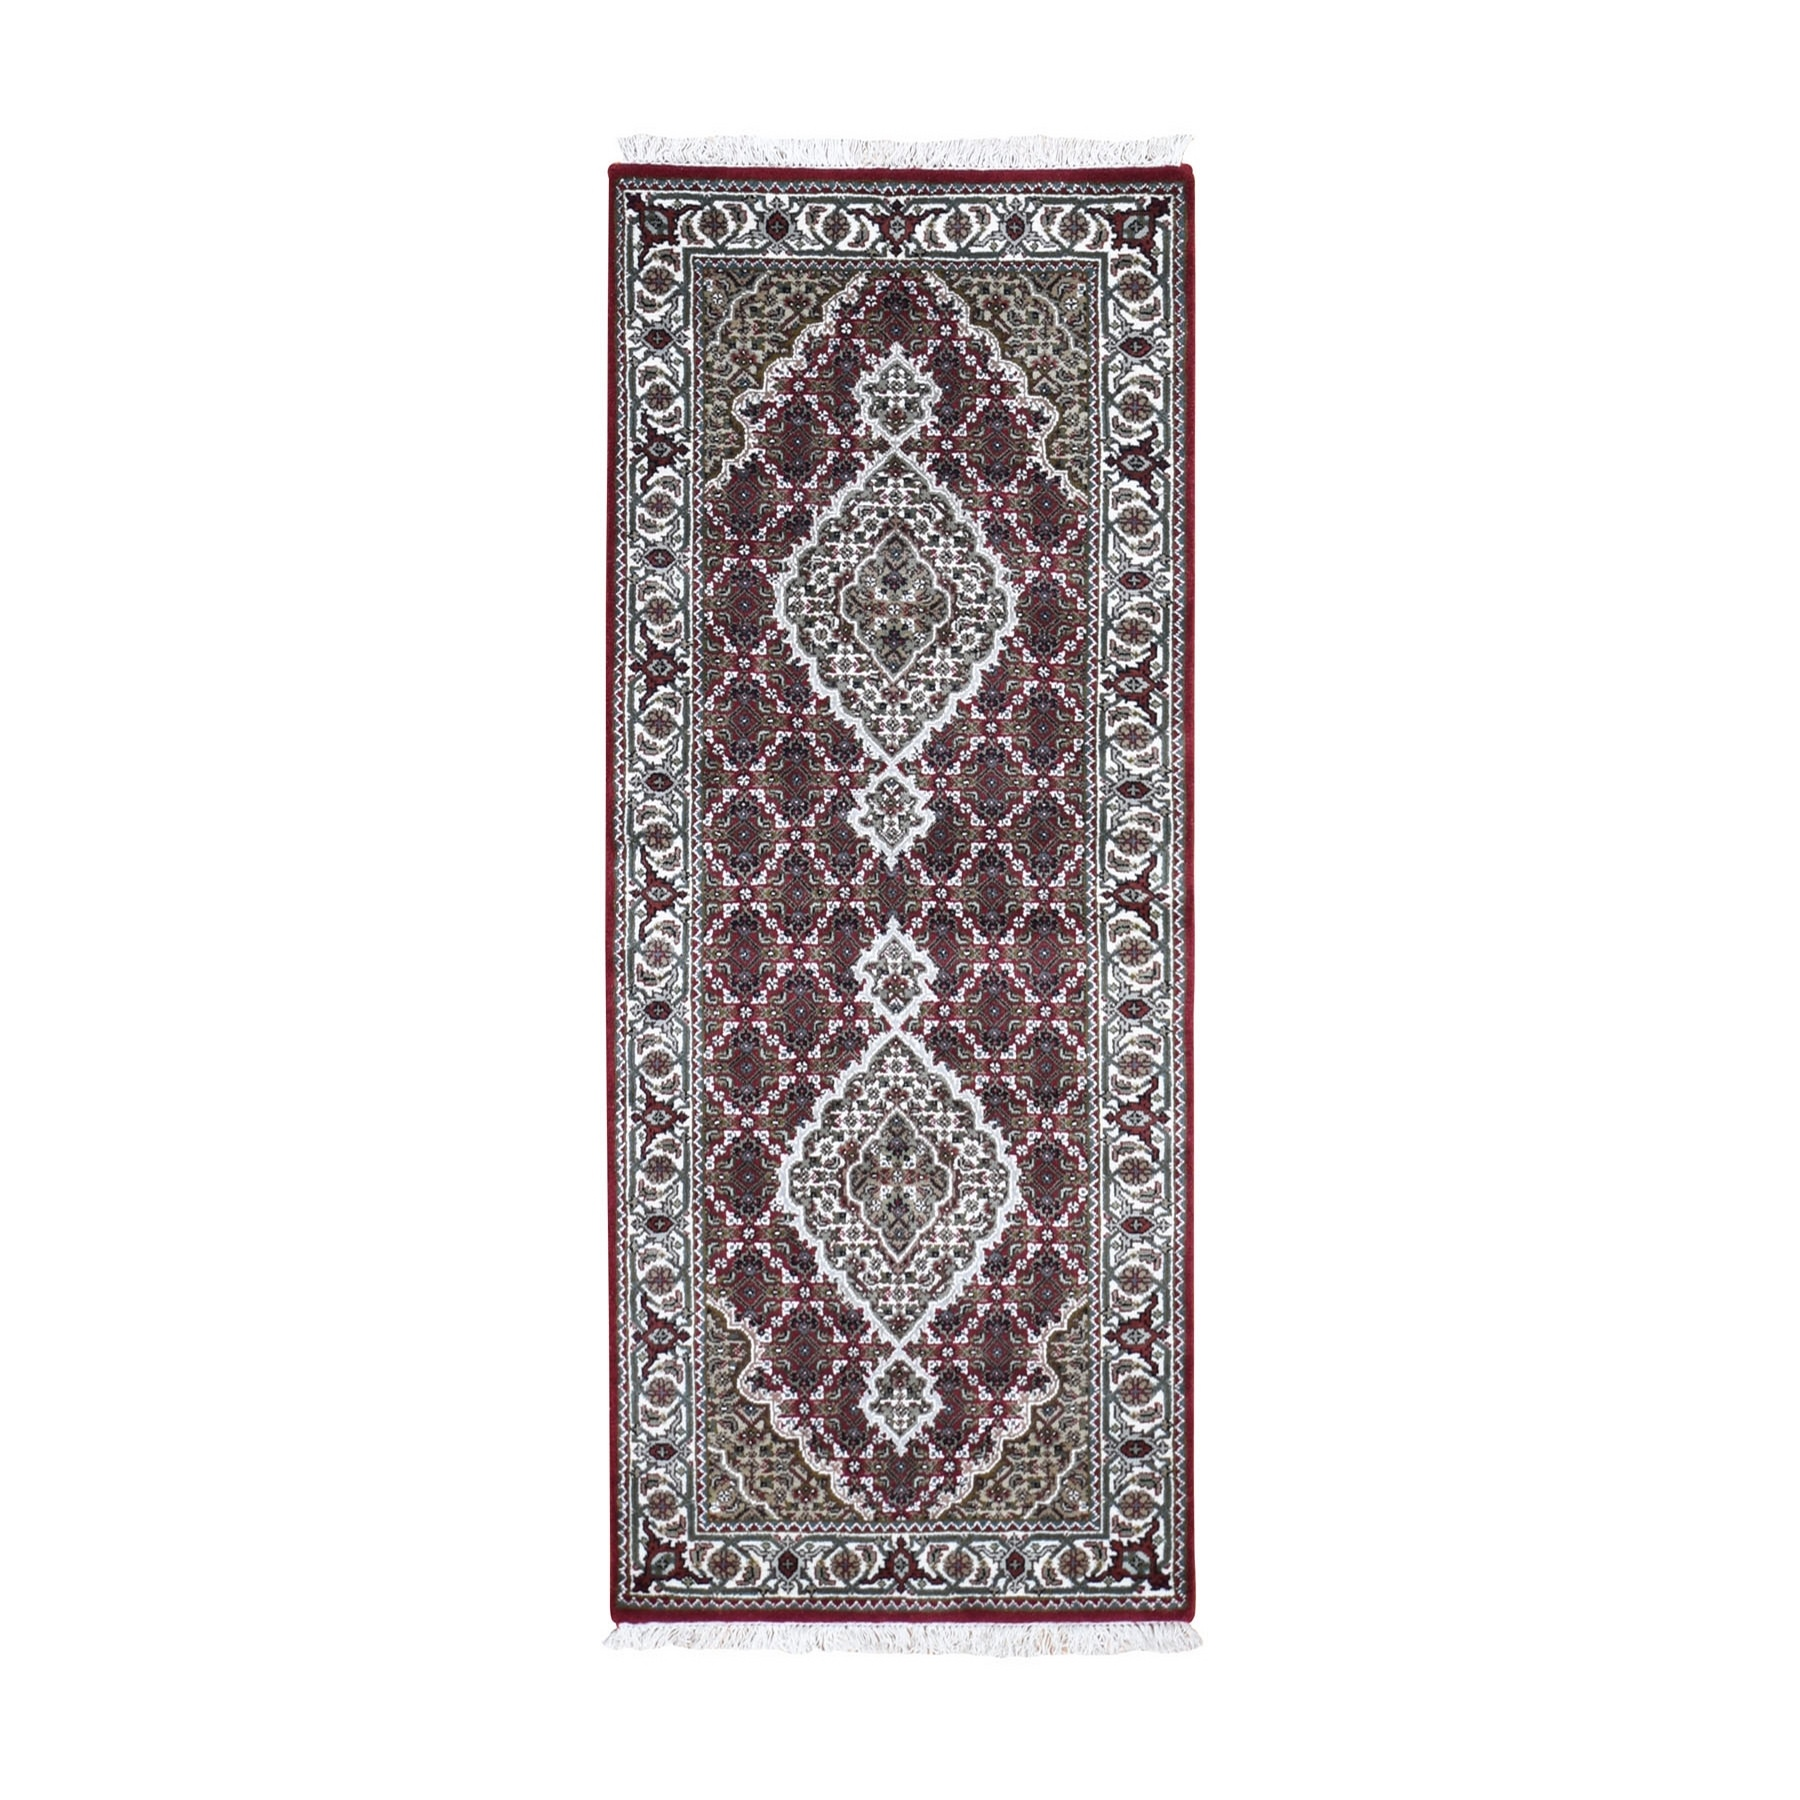 Pirniakan Collection Hand Knotted Red Rug No: 0199118